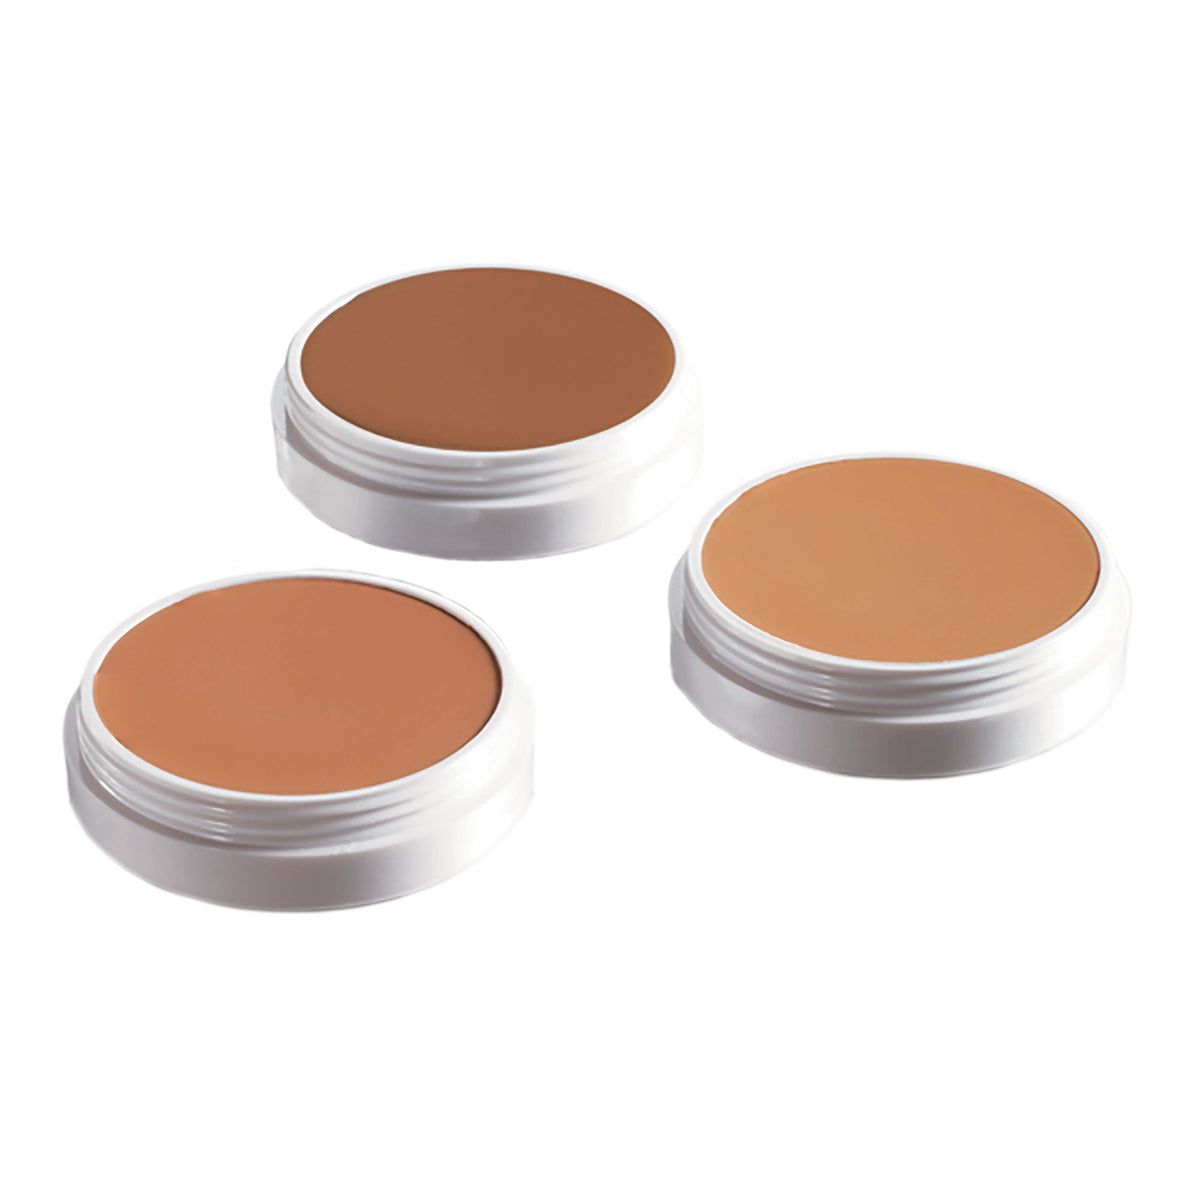 Ben Nye Classic Creme Foundation - Red Carpet FX - Professional Makeup